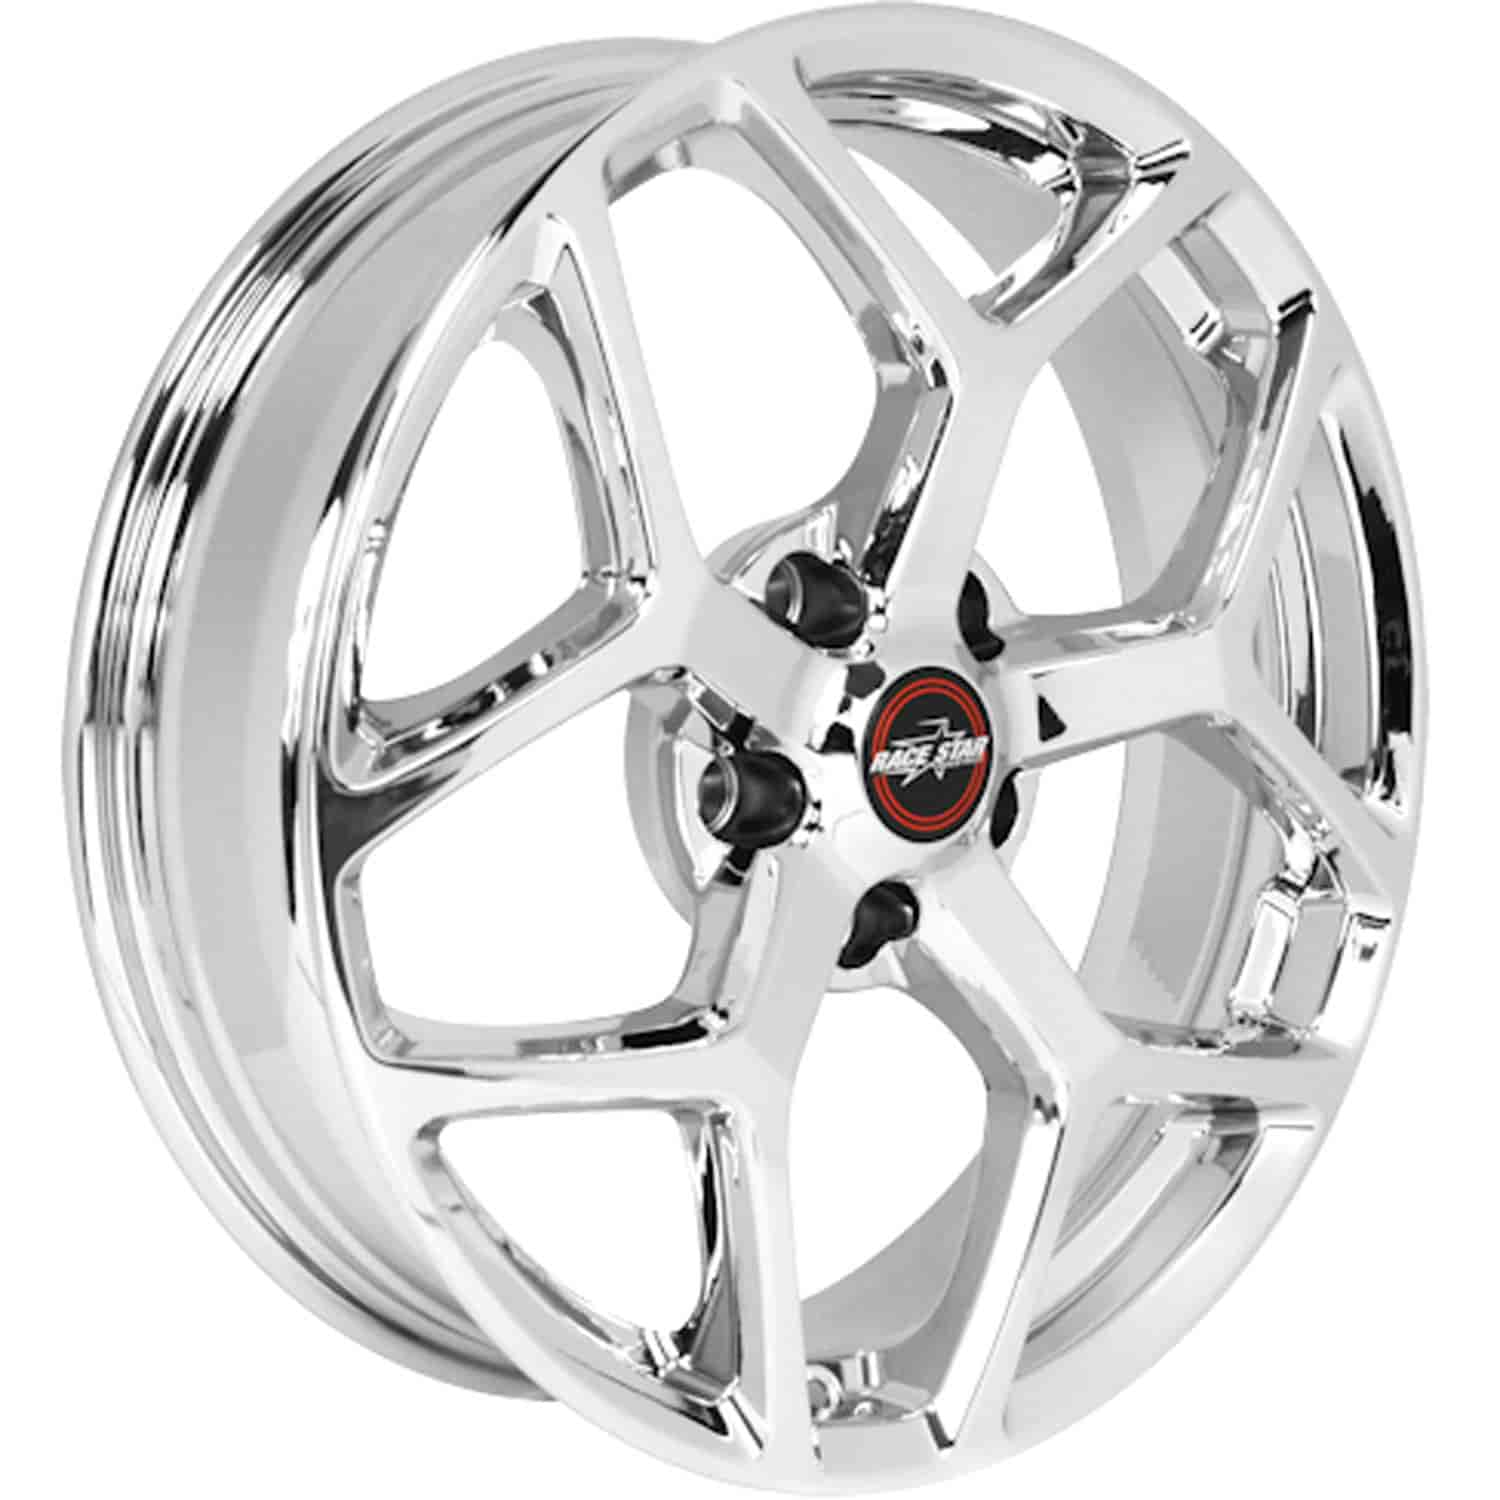 Race Star Wheels 95-745242C